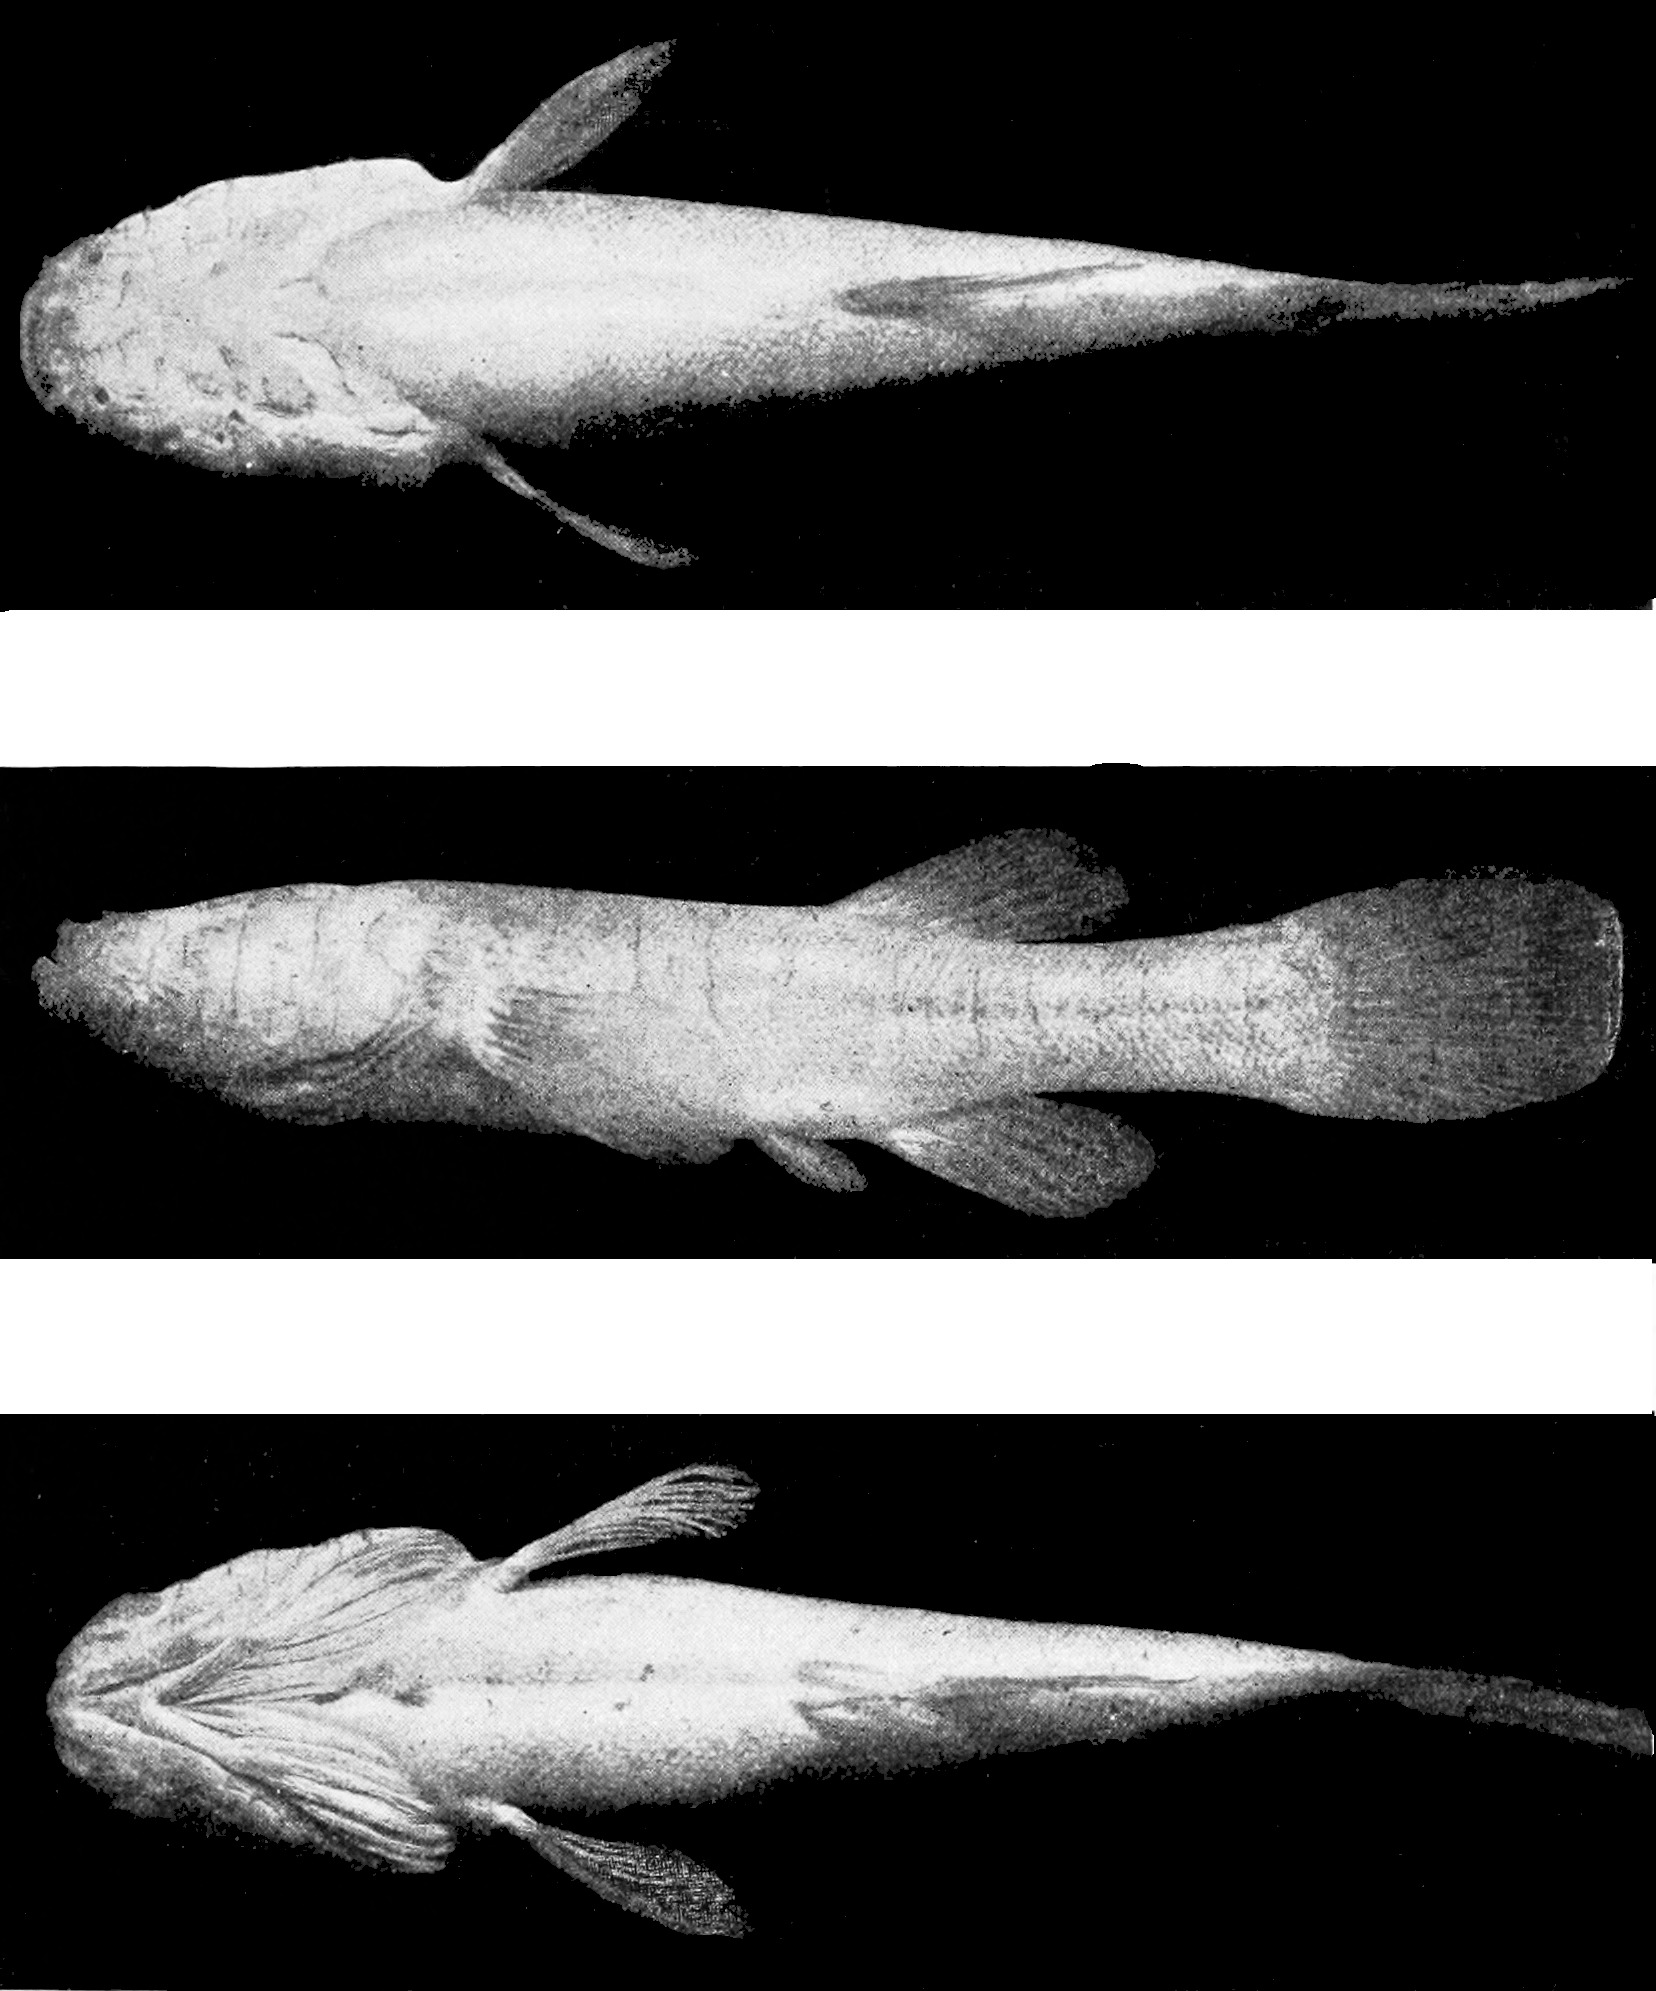 Image of cavefishes